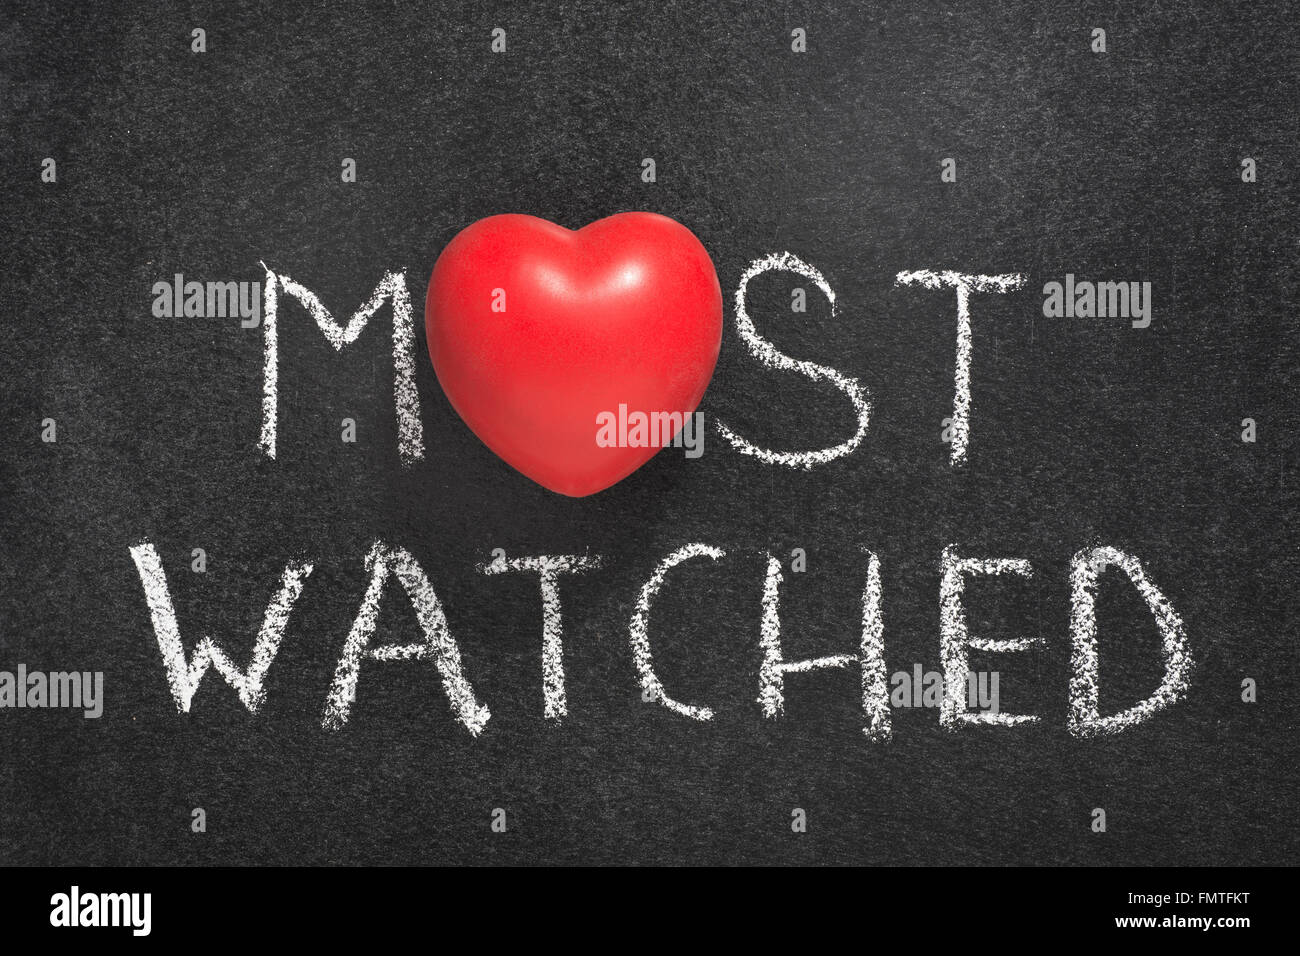 most watched phrase handwritten on blackboard with heart symbol instead of O - Stock Image